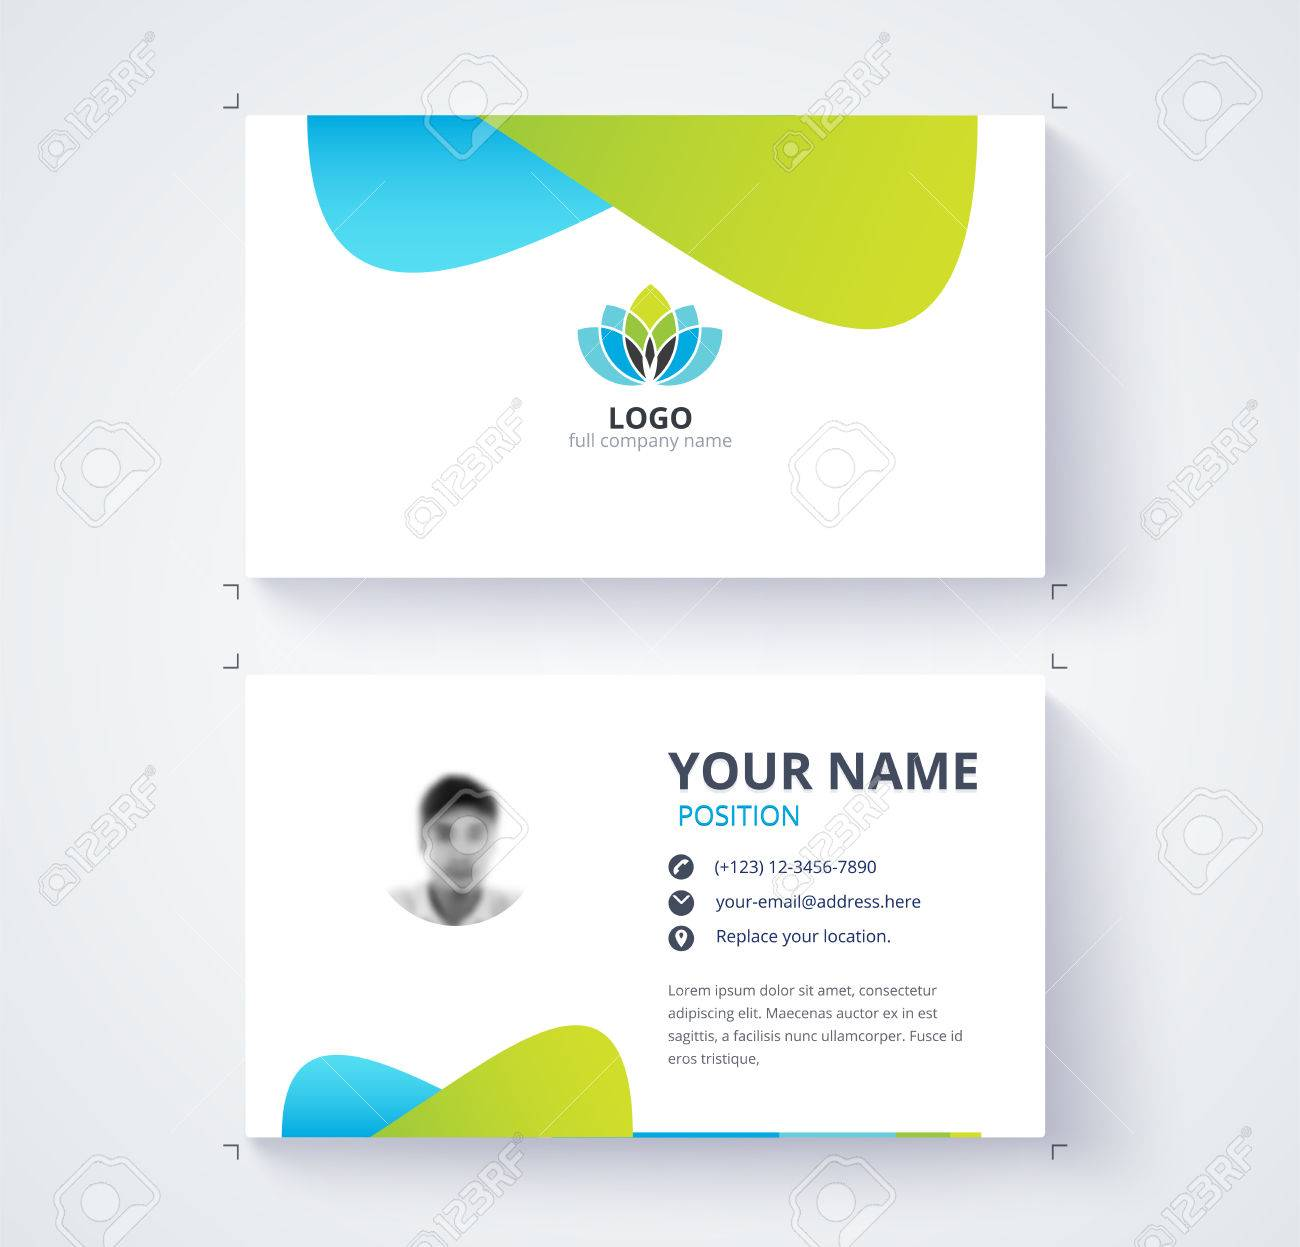 Modern business card template blue and green card background modern business card template blue and green card background stock vector 71264573 cheaphphosting Image collections